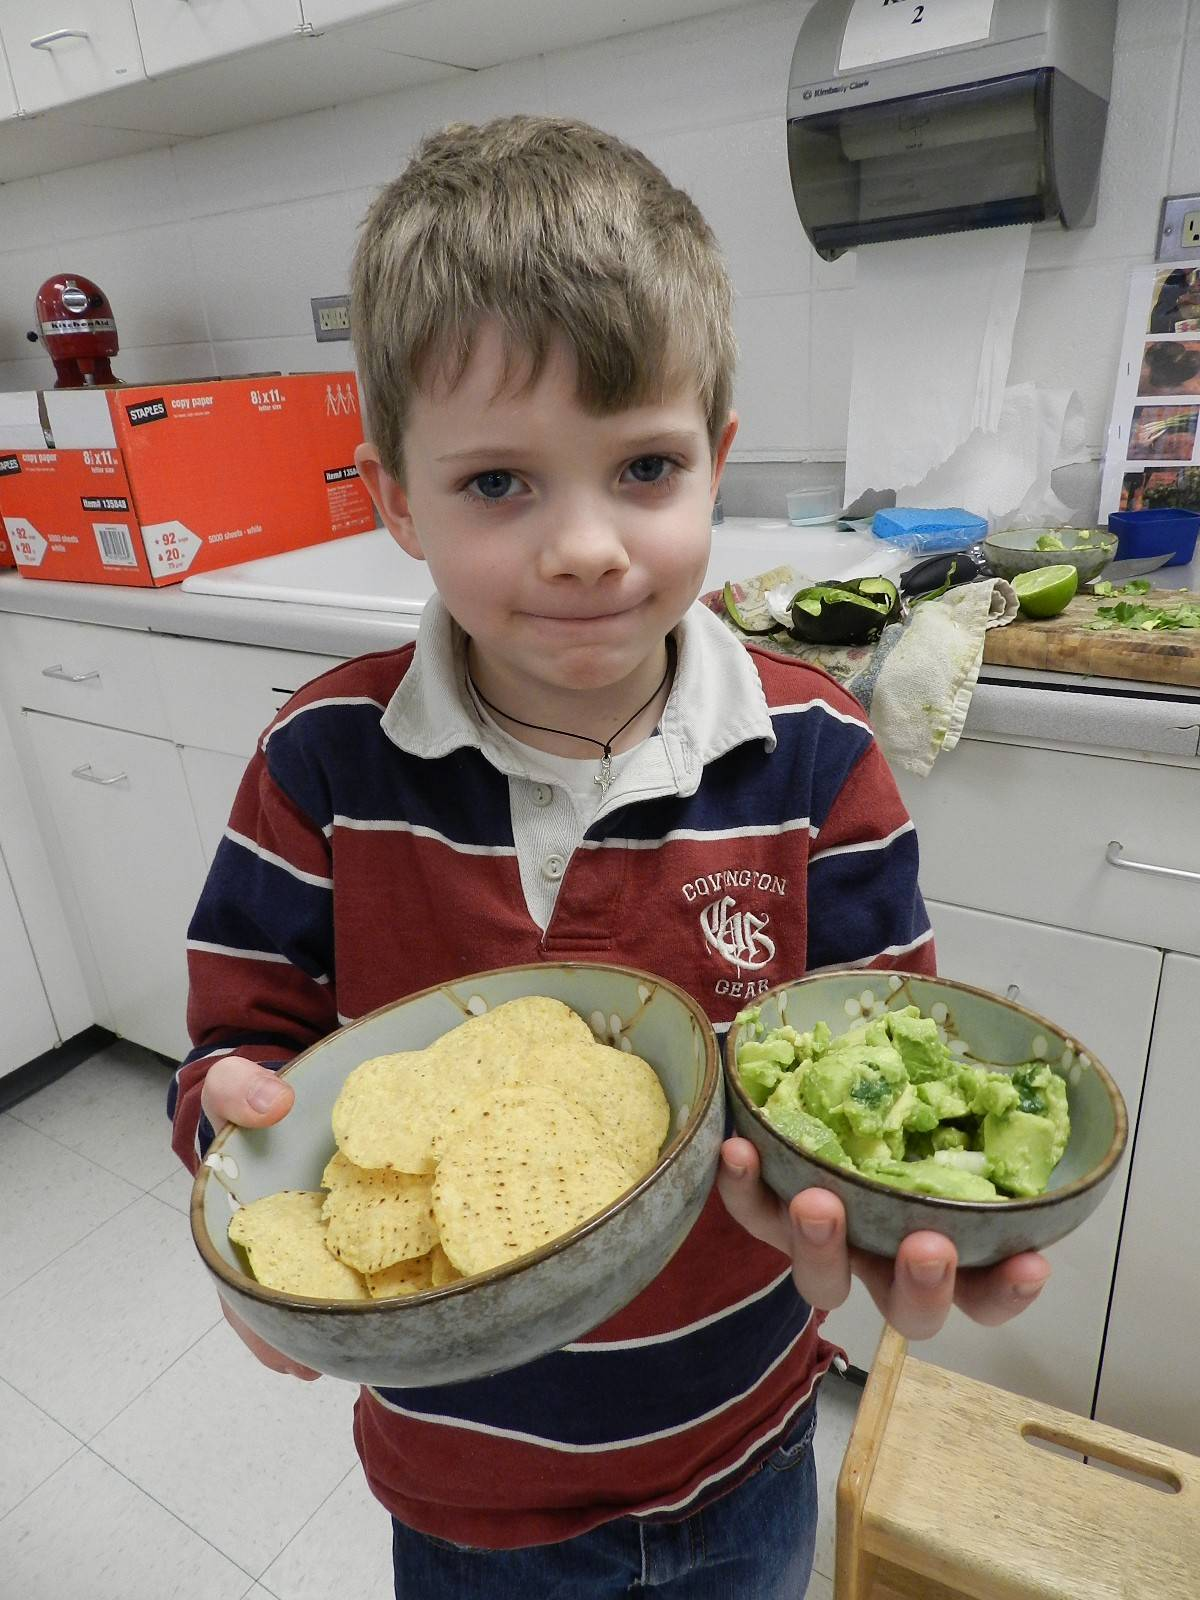 Michael McCarthy, 6, of Chicago, was recognized in the Cloverbud category for his guacamole at a favorite foods contest in Arlington Heights sponsored by 4-H.